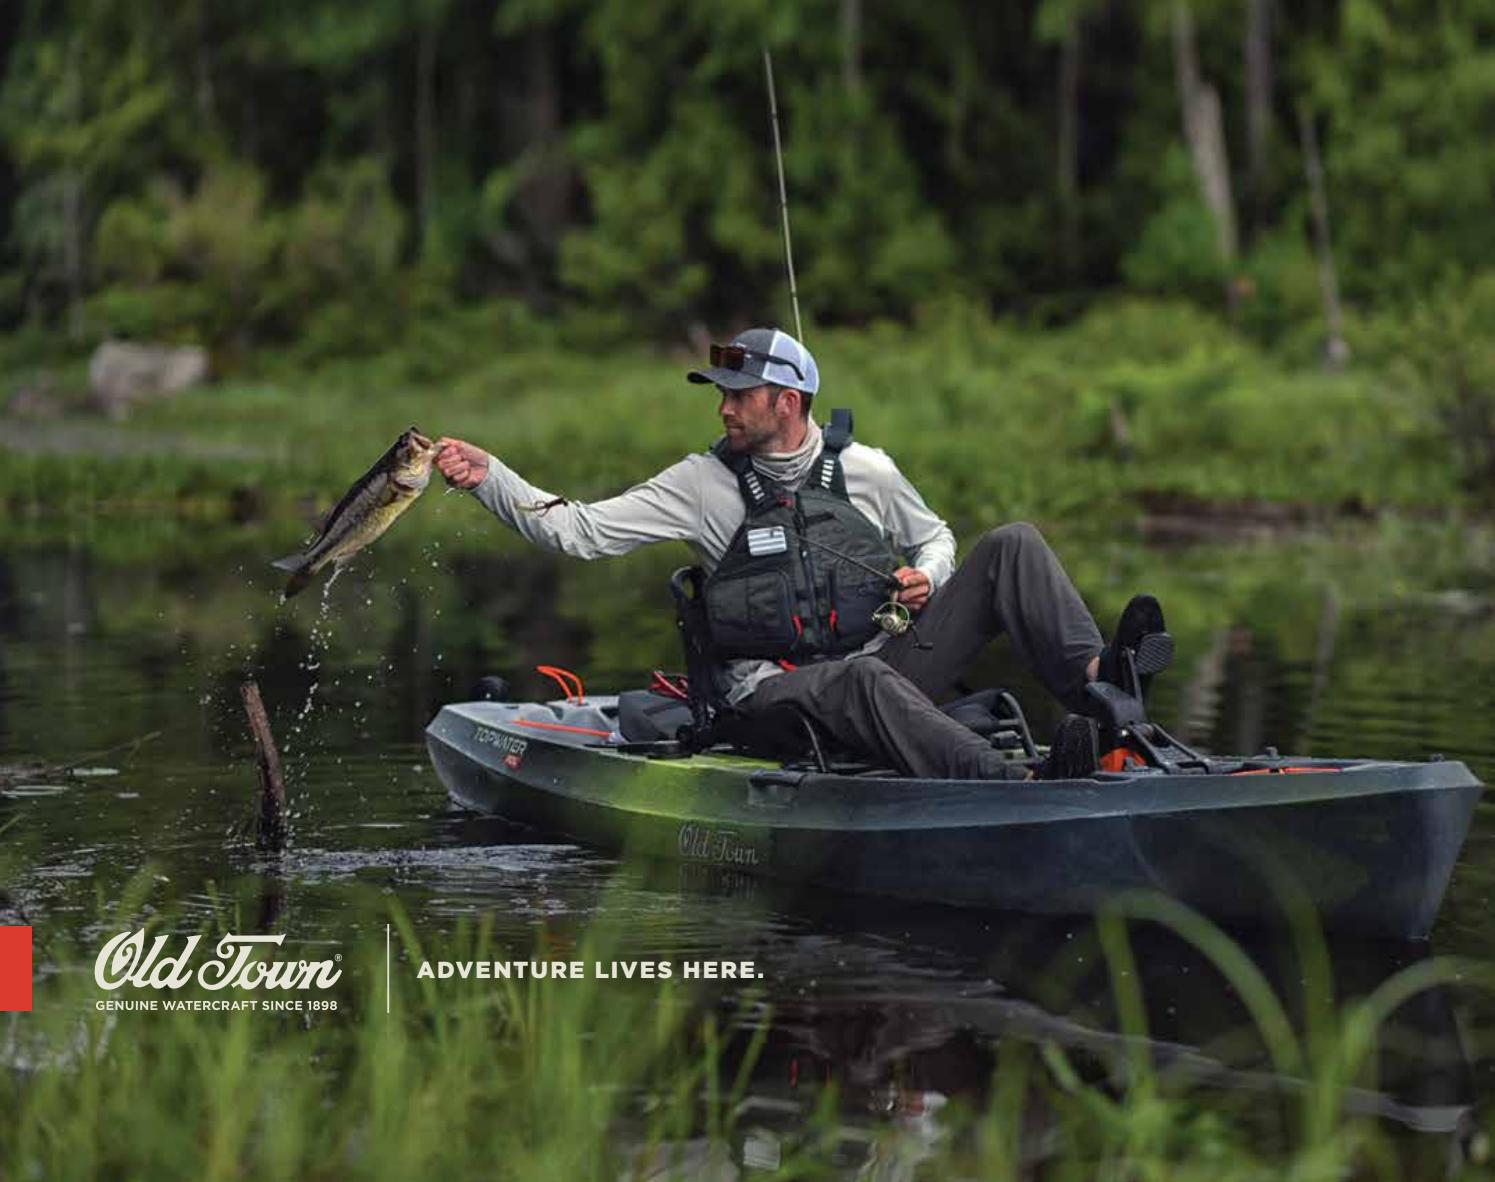 2019 Old Town Catalog by Johnson Outdoors Watercraft - issuu